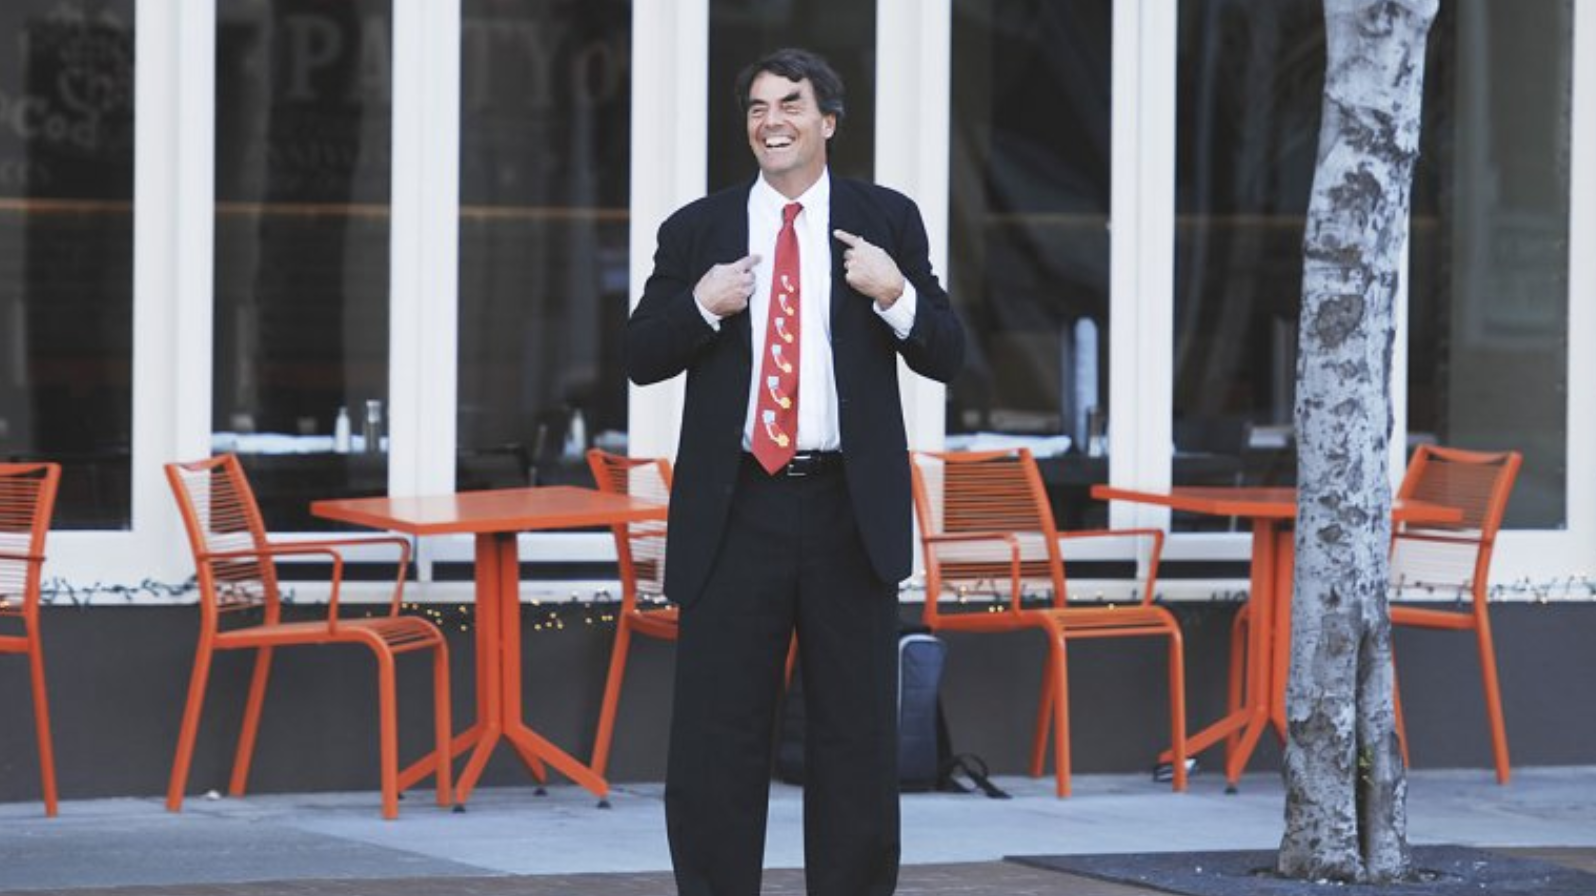 Start-up U cast member Tim Draper Offers $1 Million to Charity